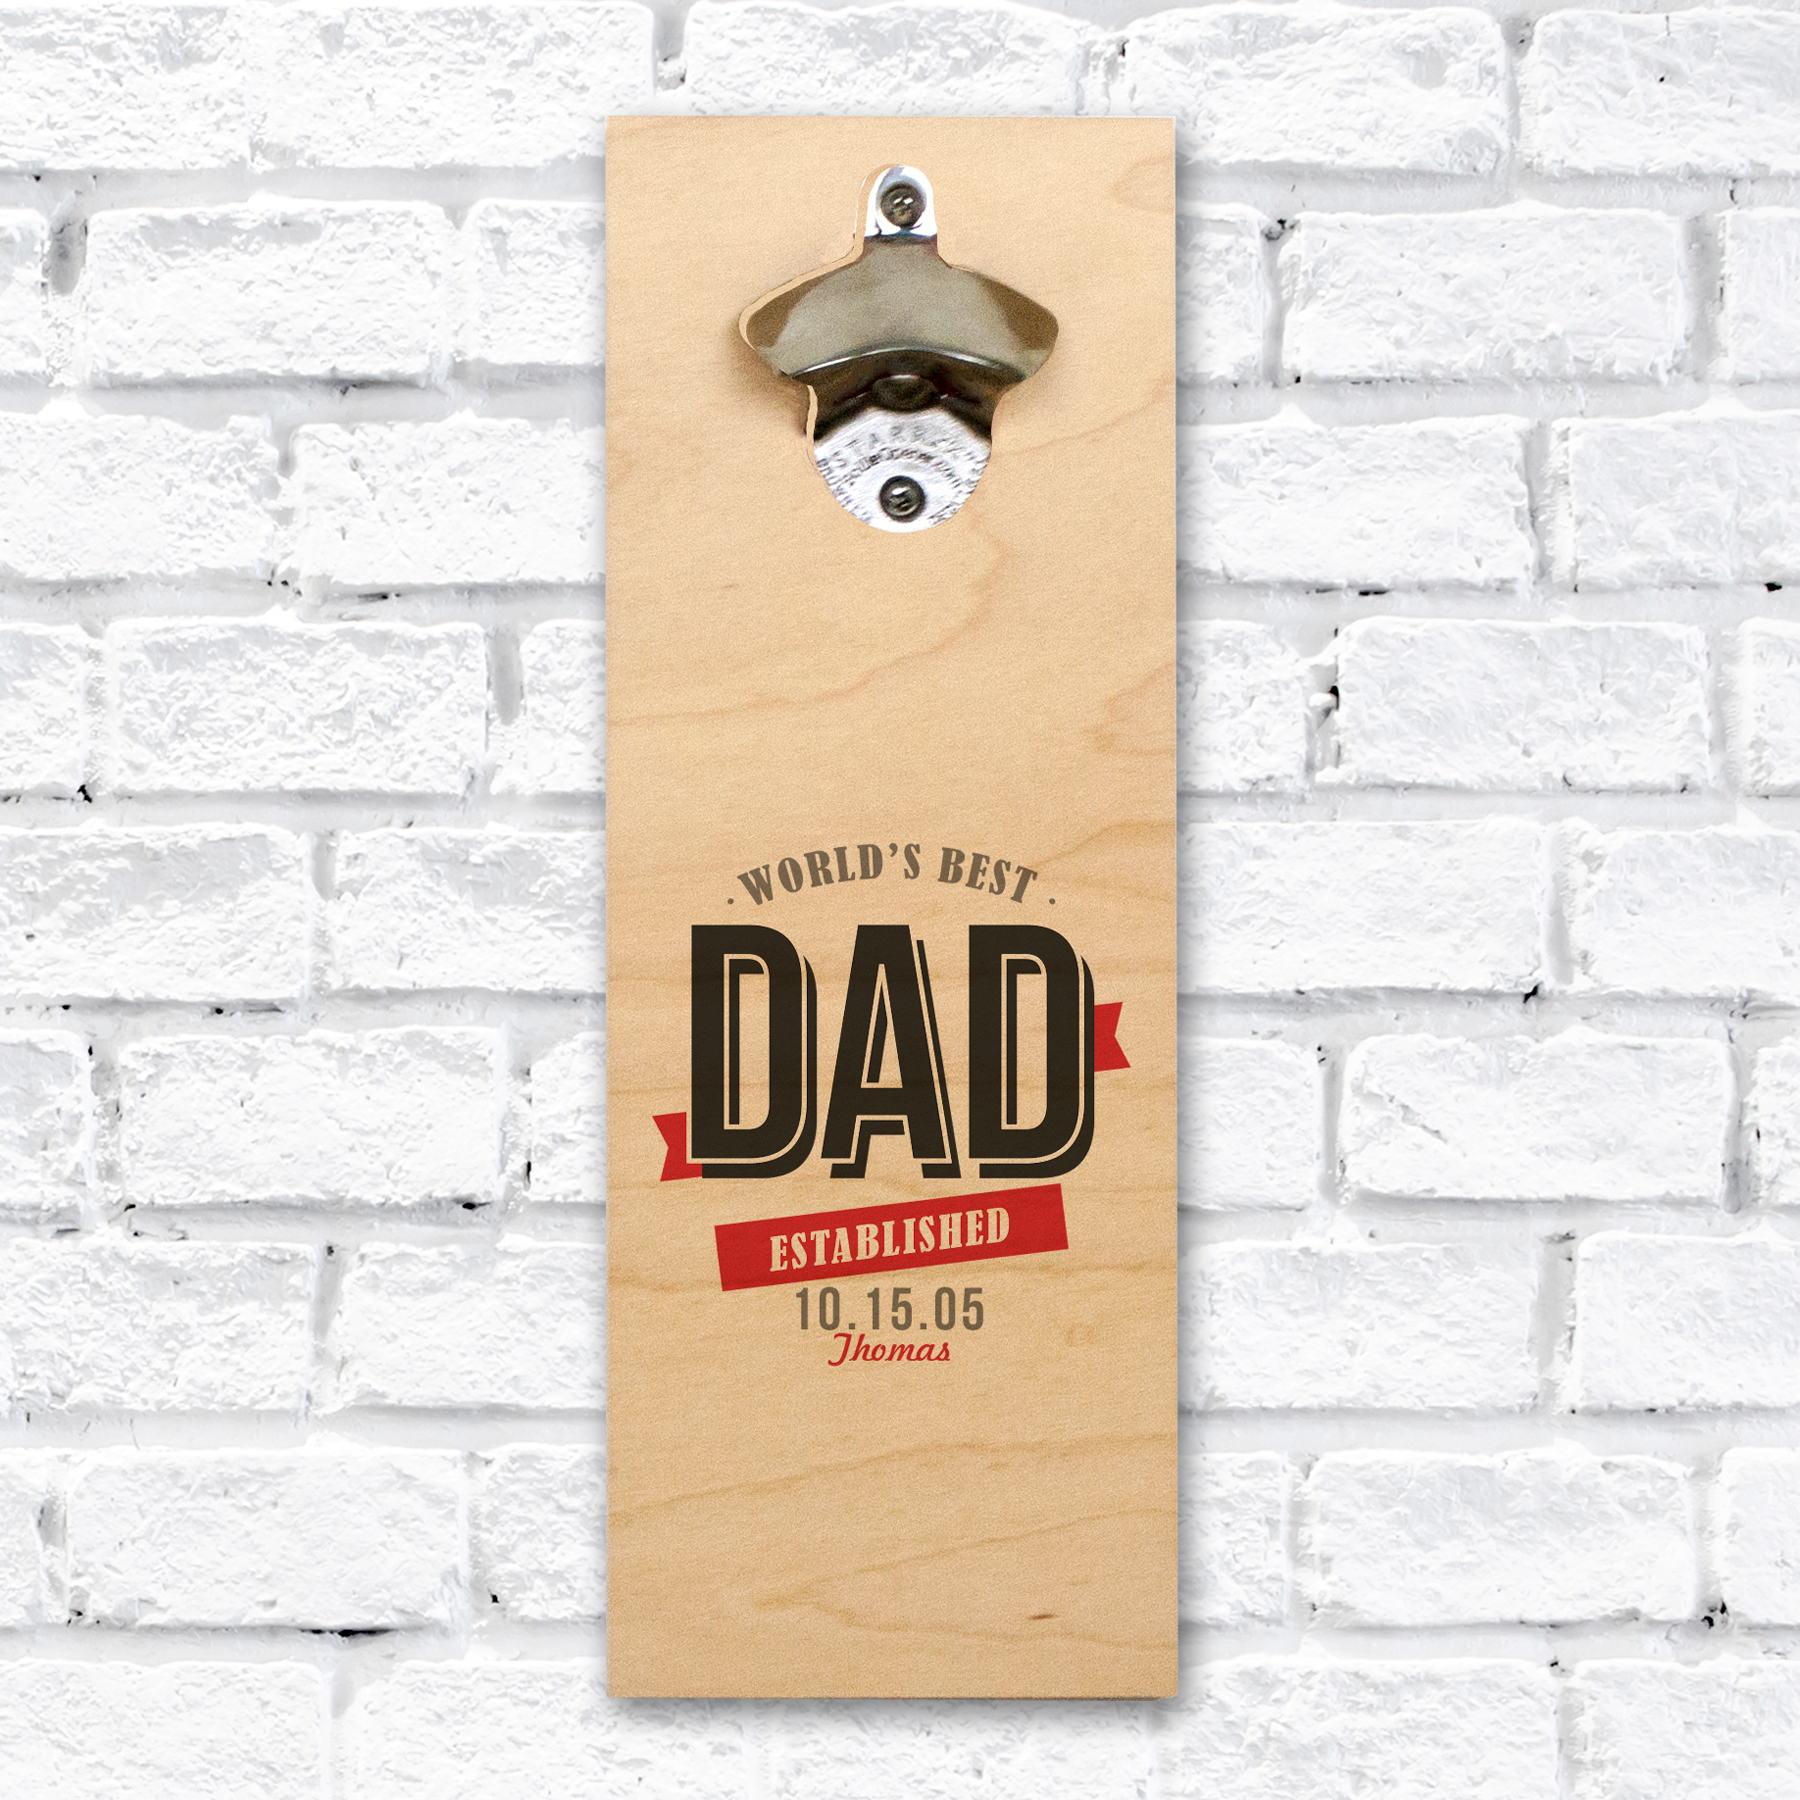 Personalized Worlds Best Wall Bottle Opener | Wall Mounted Bottle Opener